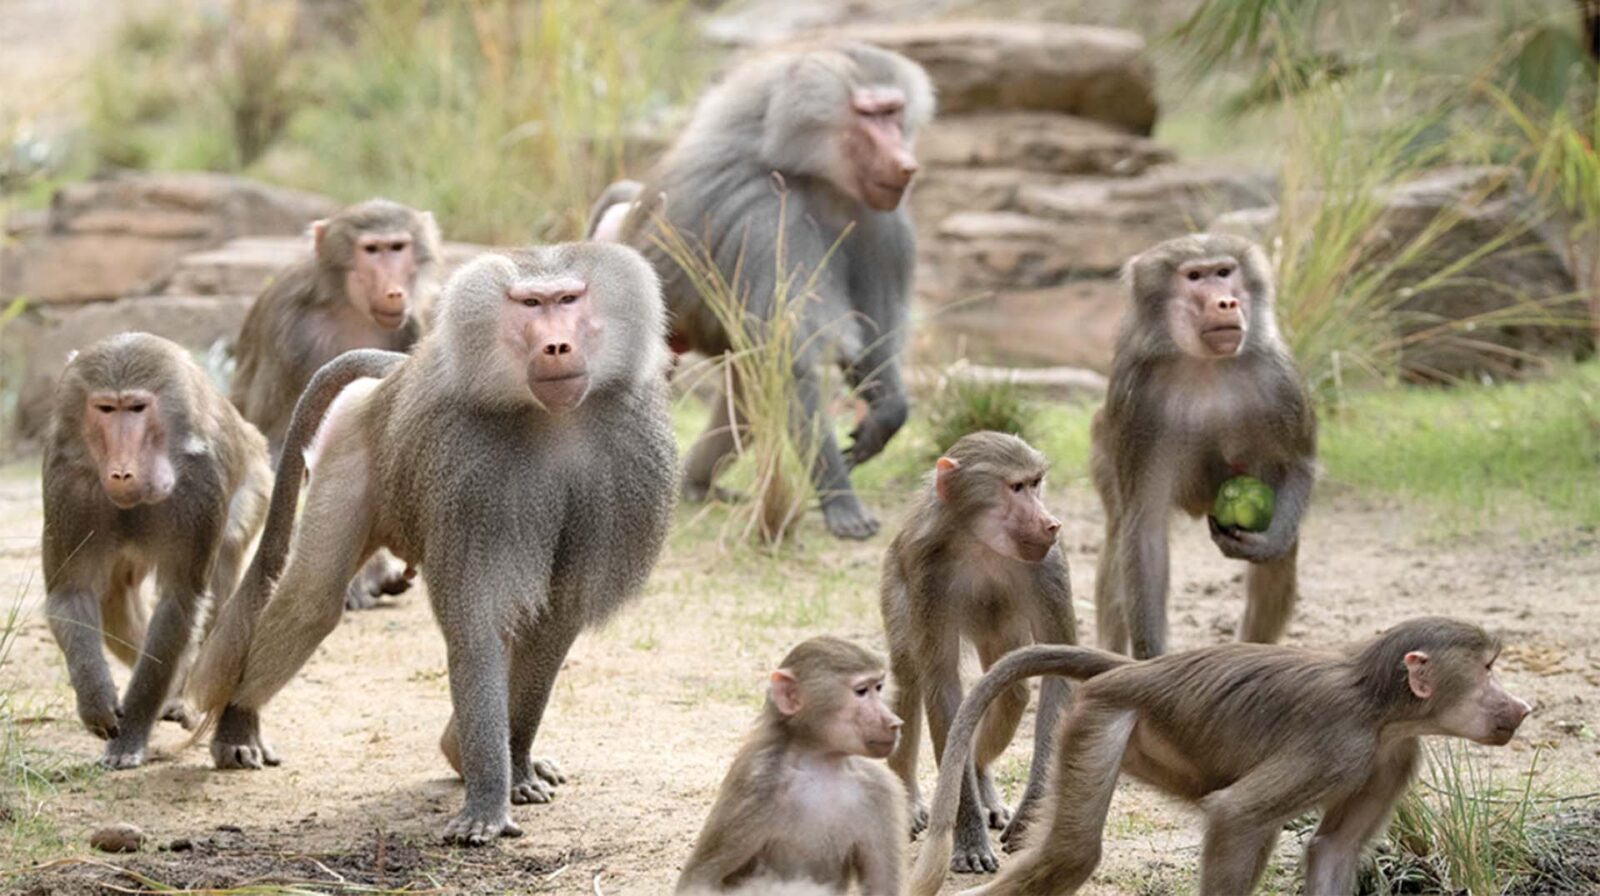 Baboons Walking on Ground